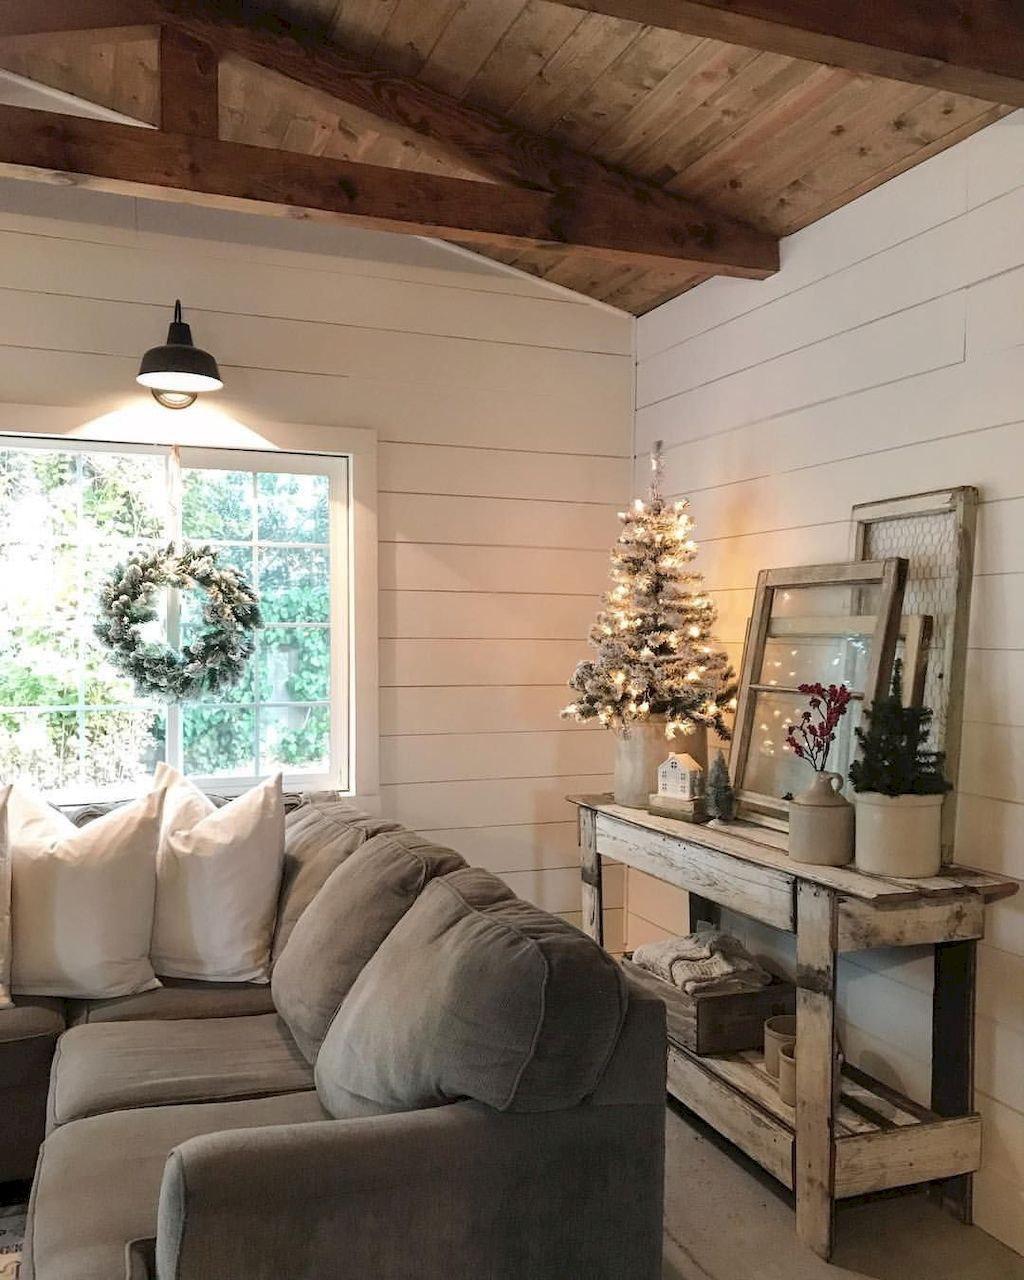 27 Comfy Farmhouse Living Room Designs To Steal: Cozy Farmhouse Living Room Decor Ideas (27)